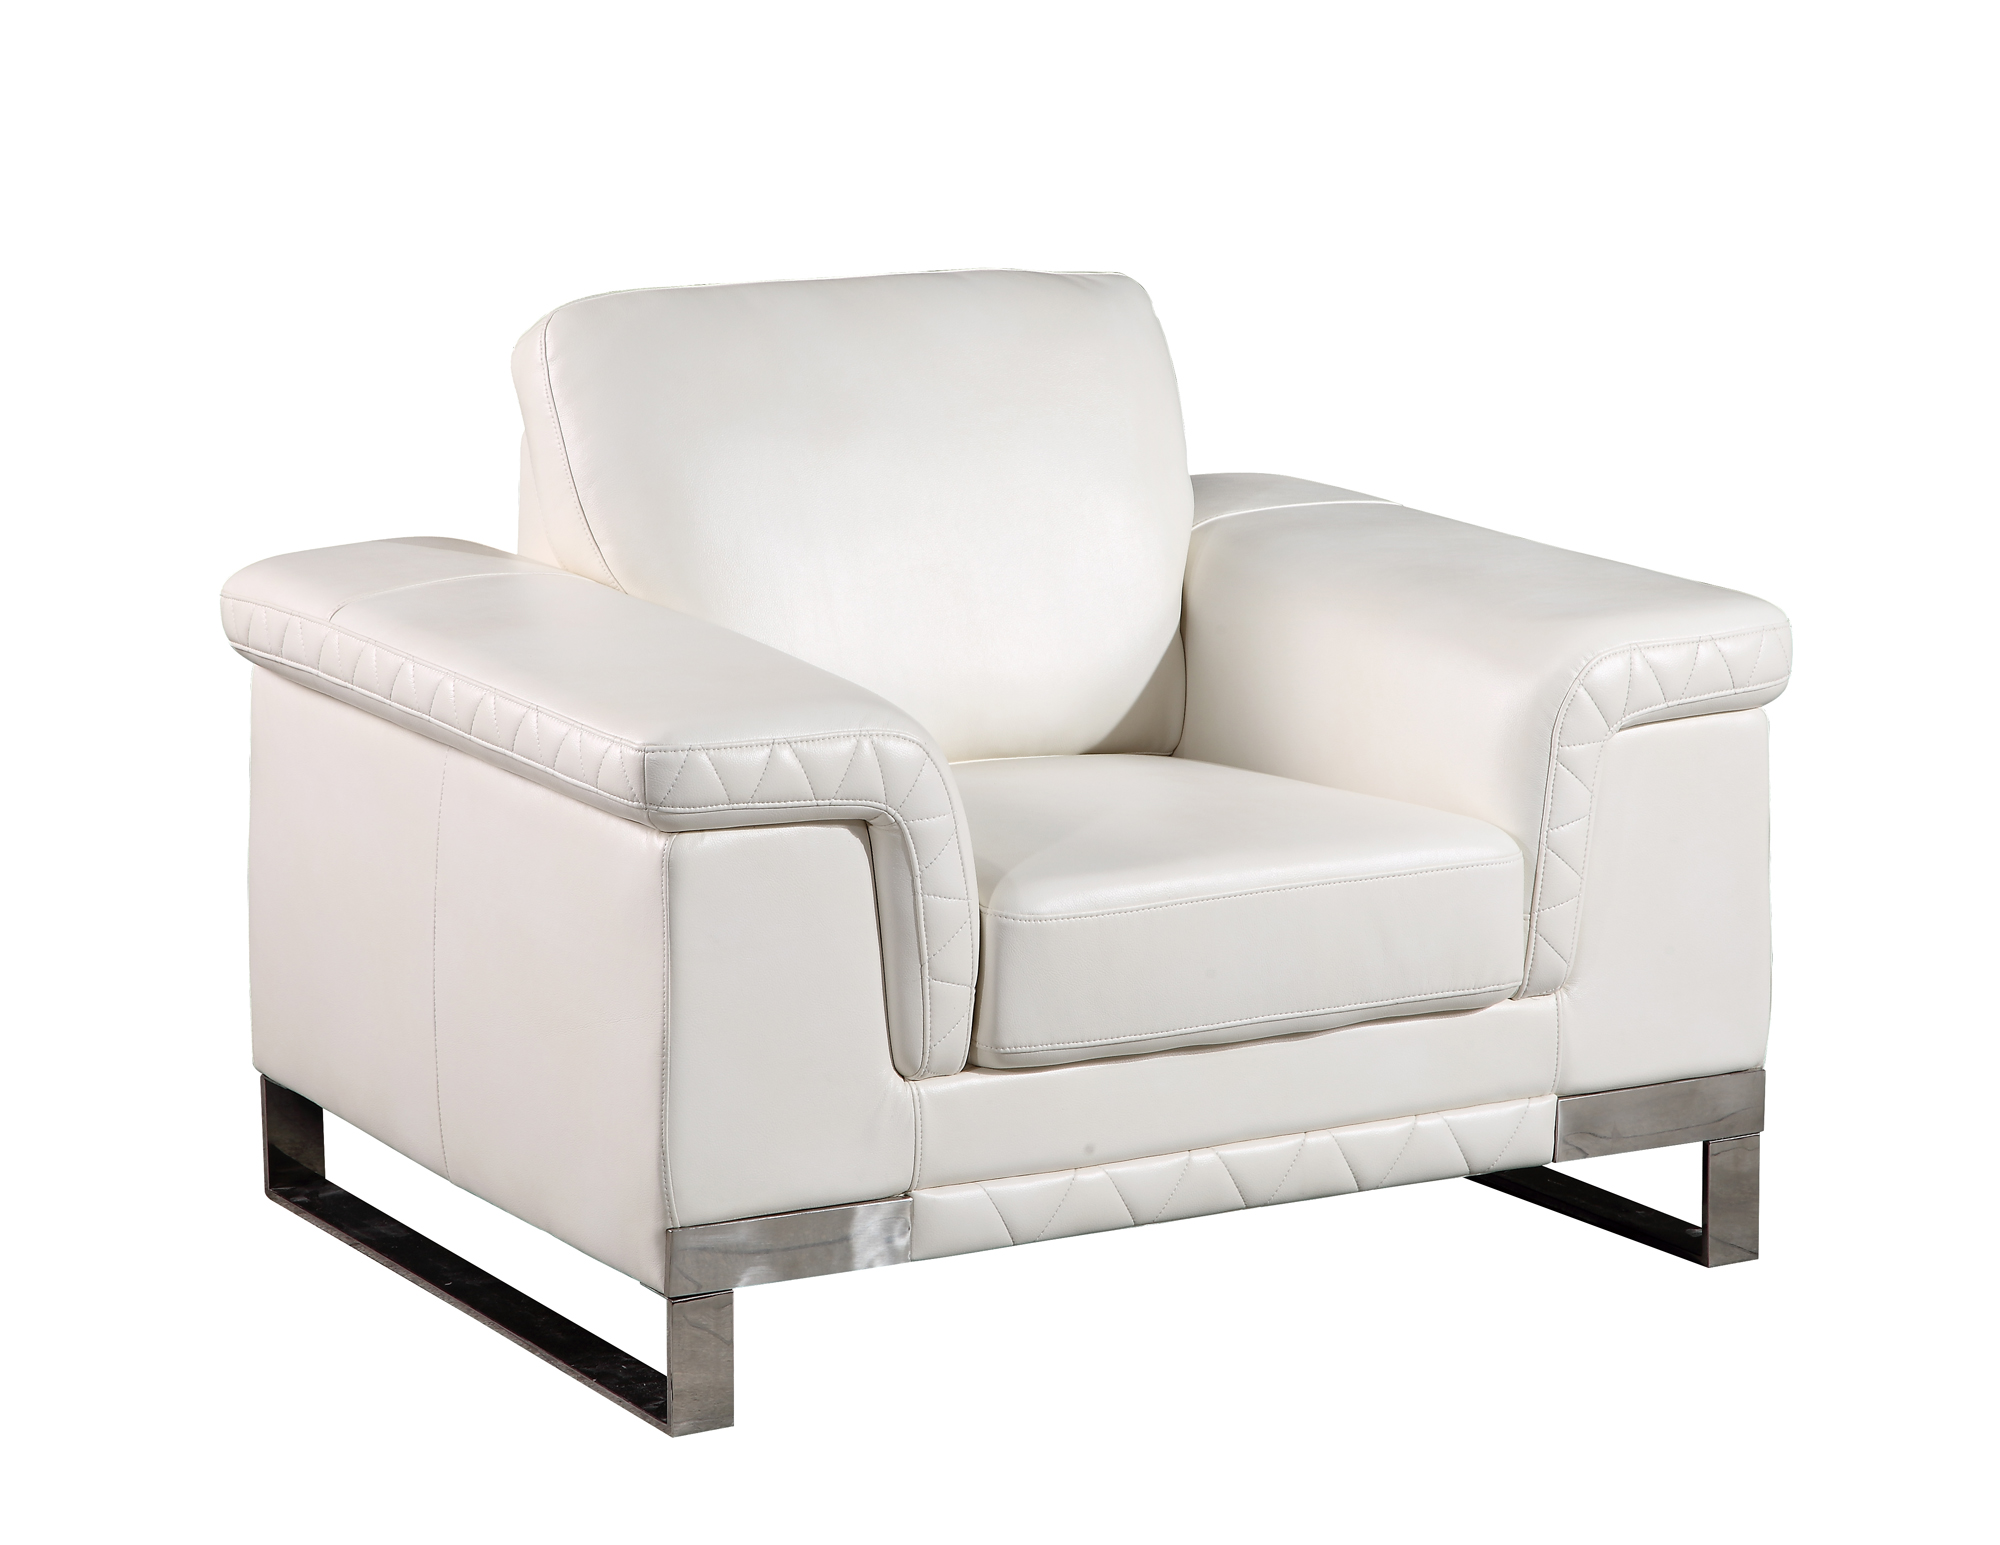 White Leather Chairs U7660 White Leather Gel Chair By Global Furniture